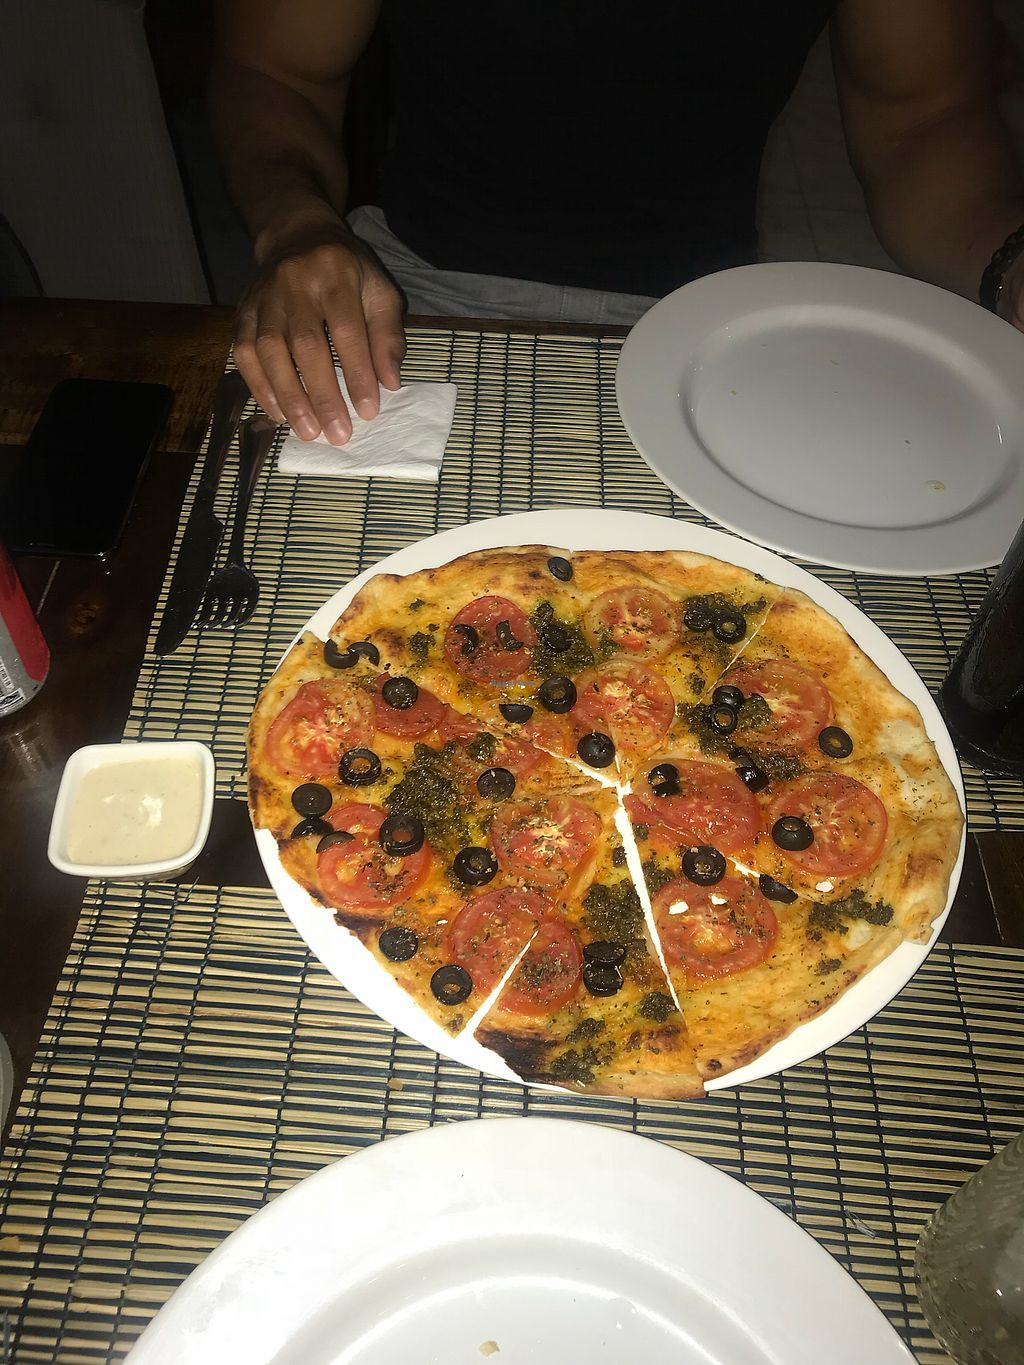 """Photo of Pailay  by <a href=""""/members/profile/mbrewer1127"""">mbrewer1127</a> <br/>Delicious vegan pesto pizza <br/> February 23, 2018  - <a href='/contact/abuse/image/106139/362775'>Report</a>"""